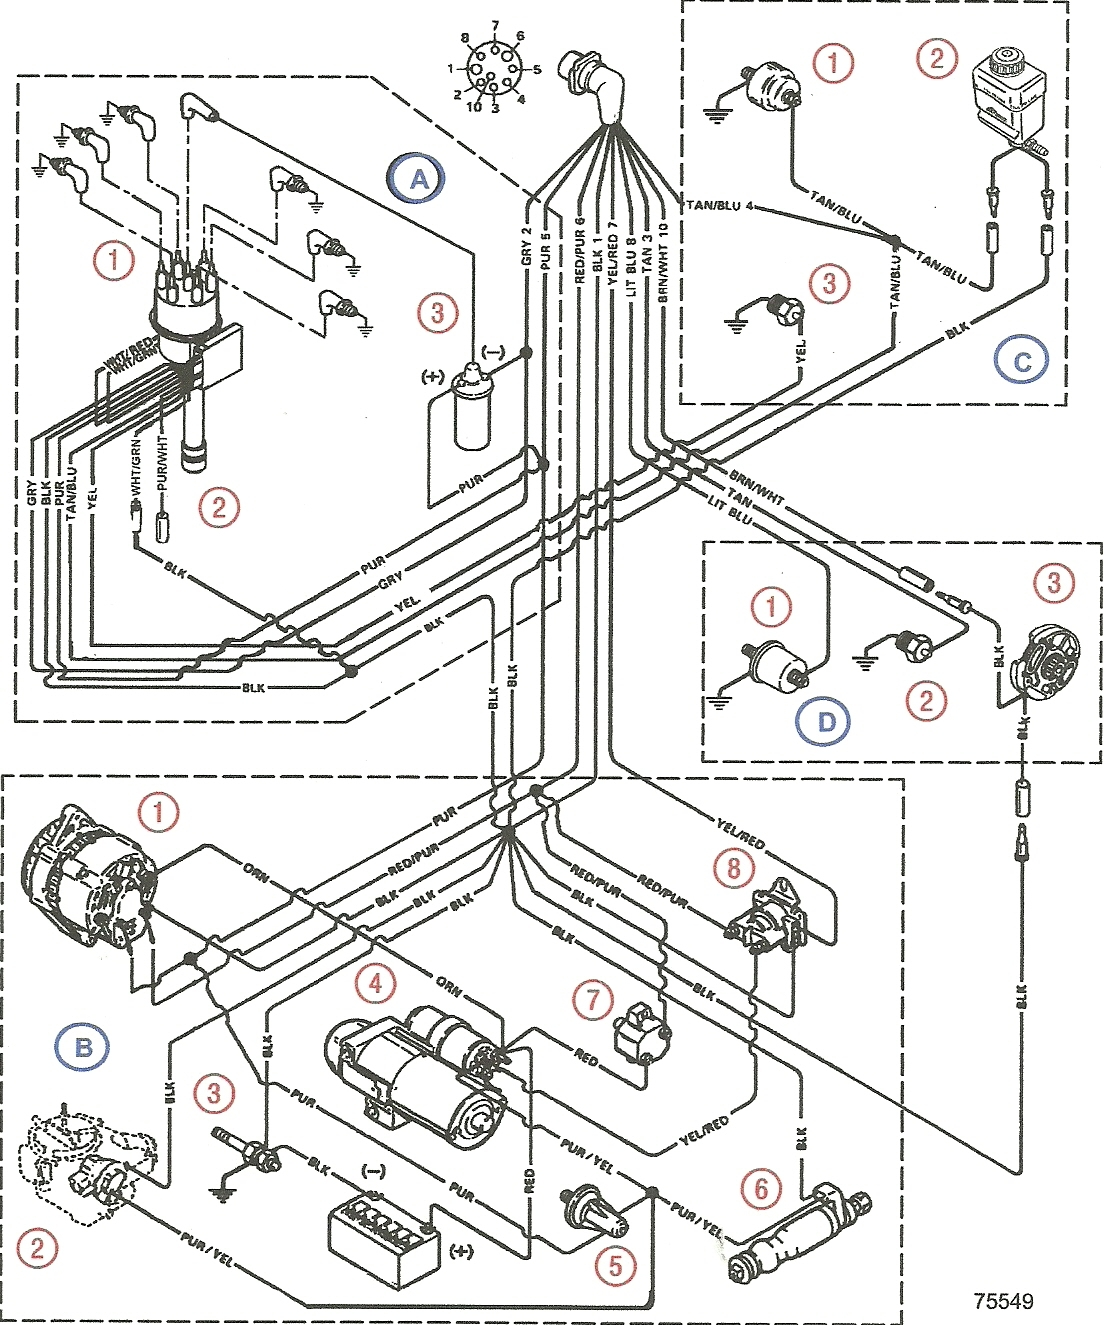 hight resolution of omc 4 3 wiring diagram wiring diagram splitomc ford 2 3 engine diagram wiring diagram ame